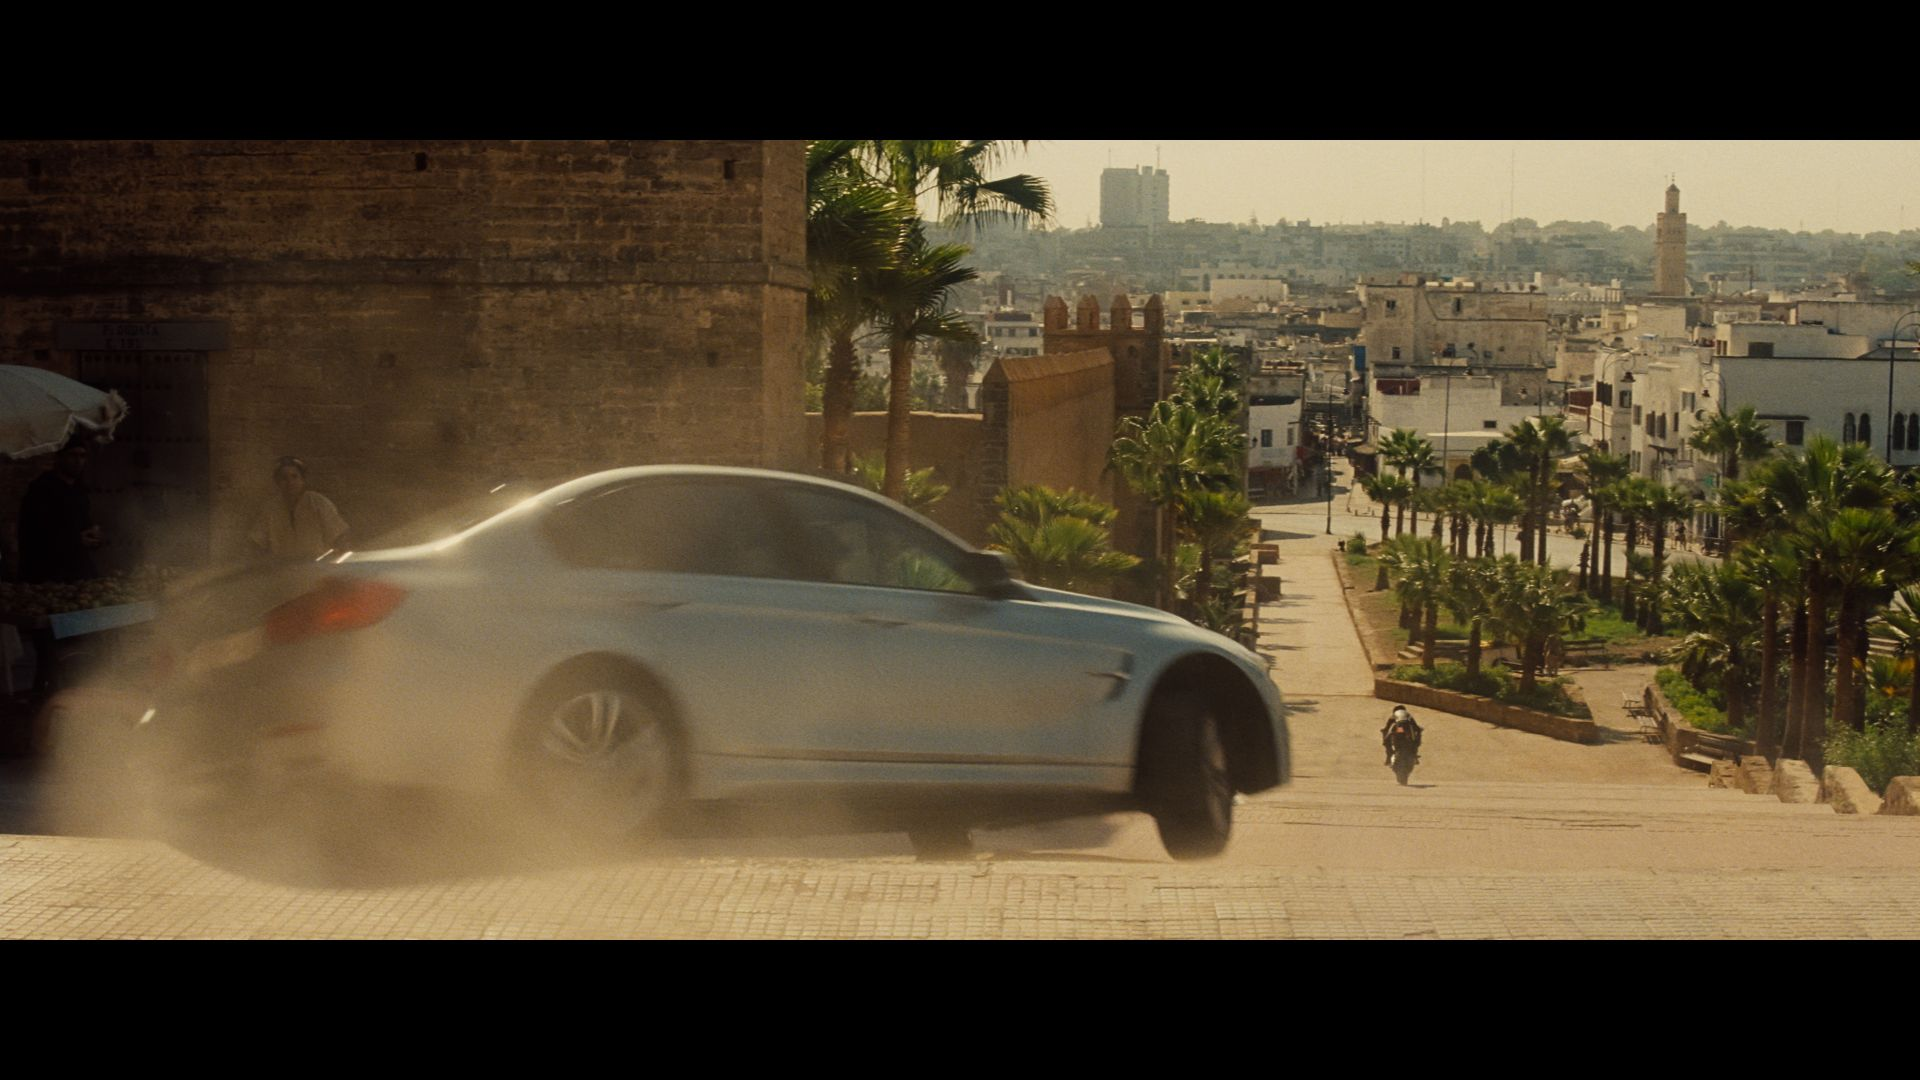 Bmw Goes Rogue For Fifth Mission Impossible Movie Video